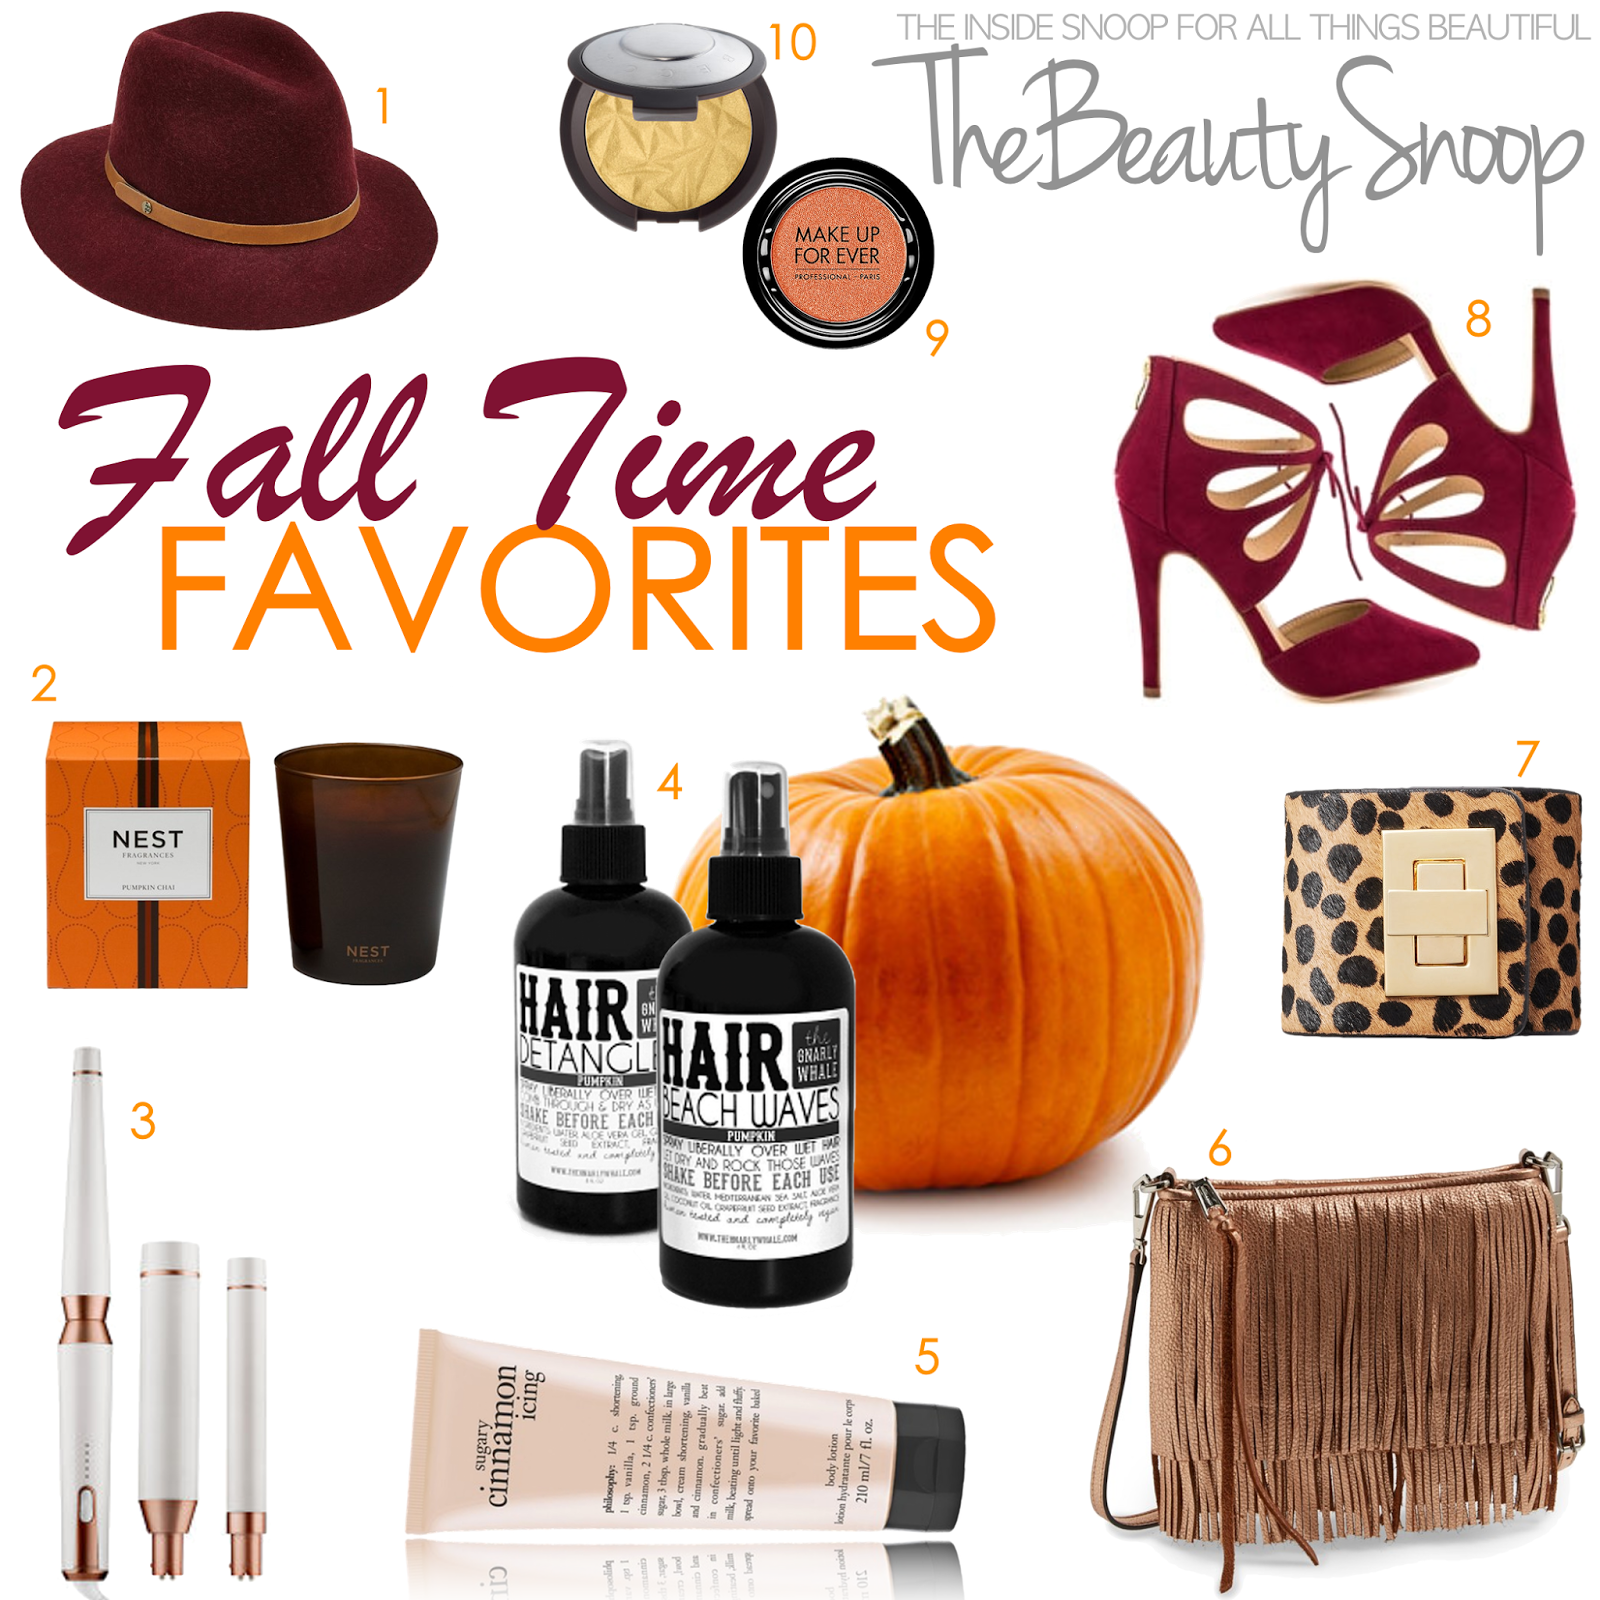 Pumpkin scented beauty products